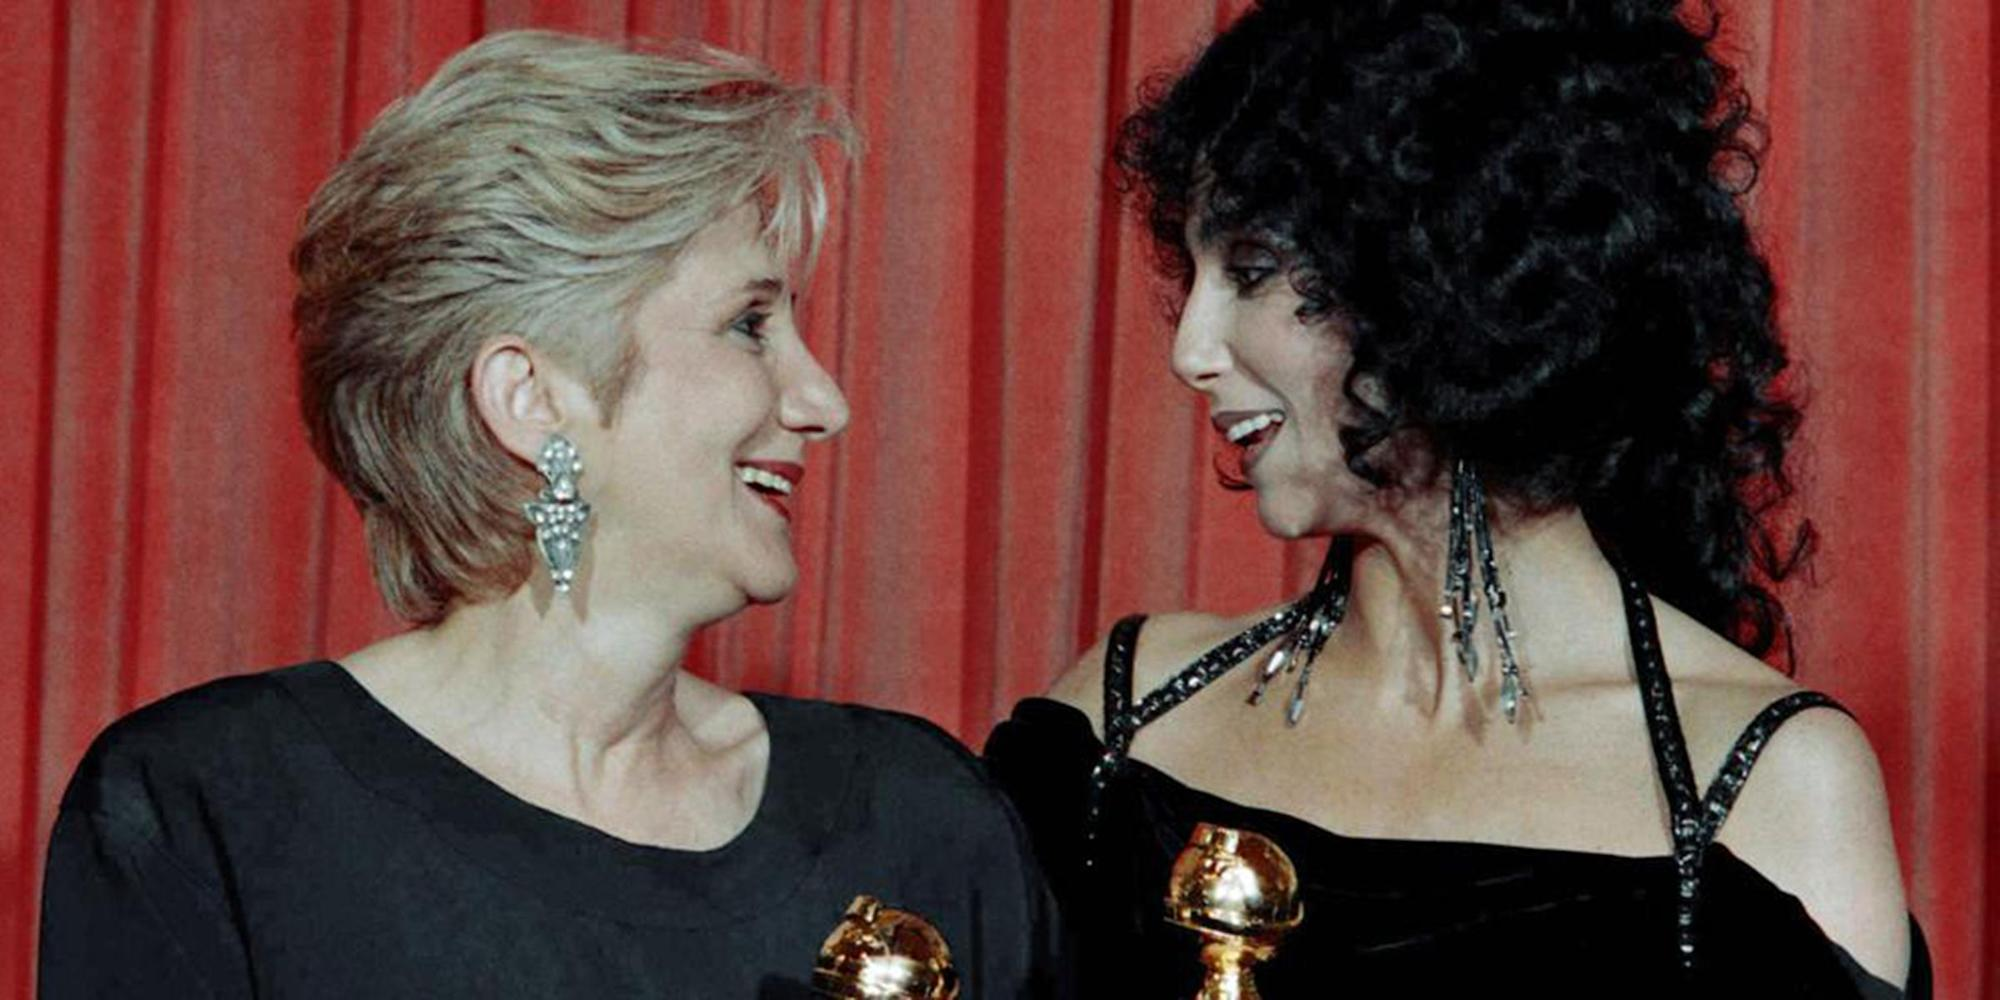 Cher honors late 'Moonstruck' co-star Olympia Dukakis in heartfelt statements